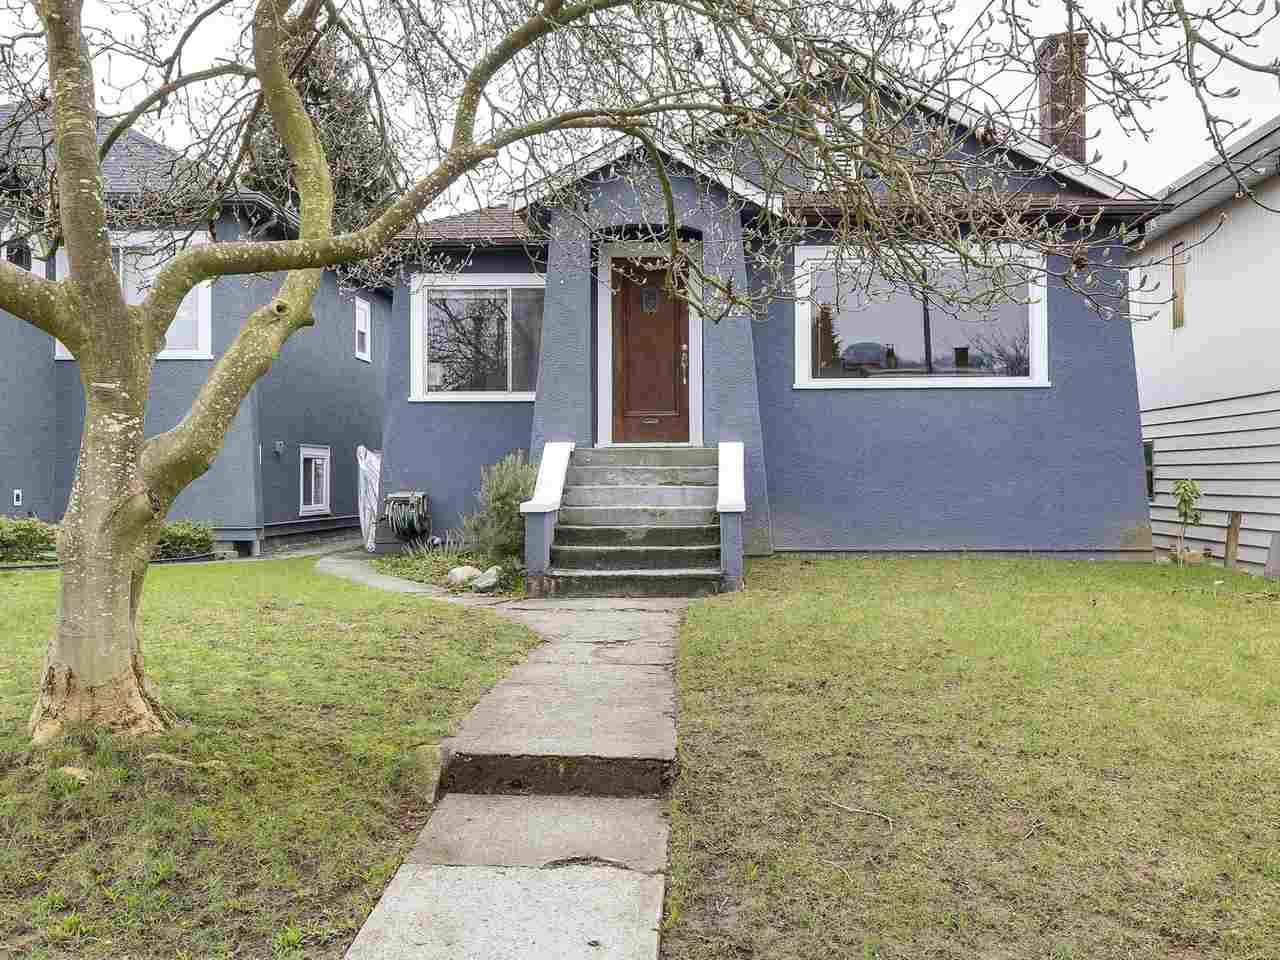 Main Photo: 3114 TURNER Street in Vancouver: Renfrew VE House for sale (Vancouver East)  : MLS® # R2147724